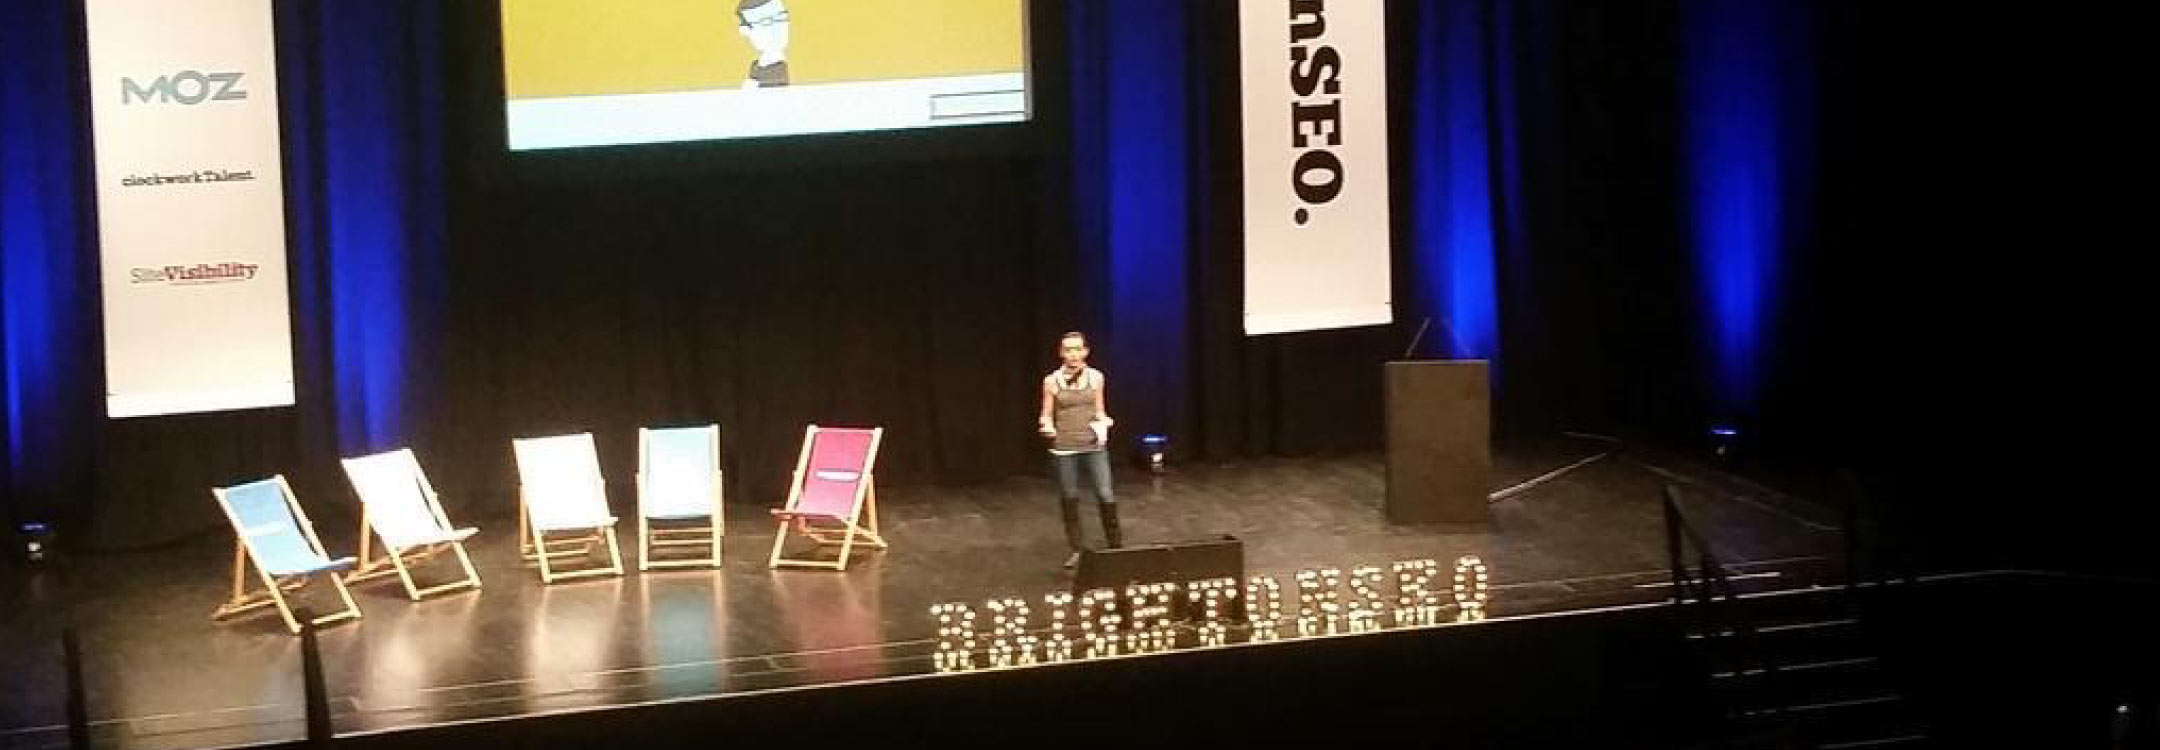 Shelley Walsh speaking on stage at Brighton SEO